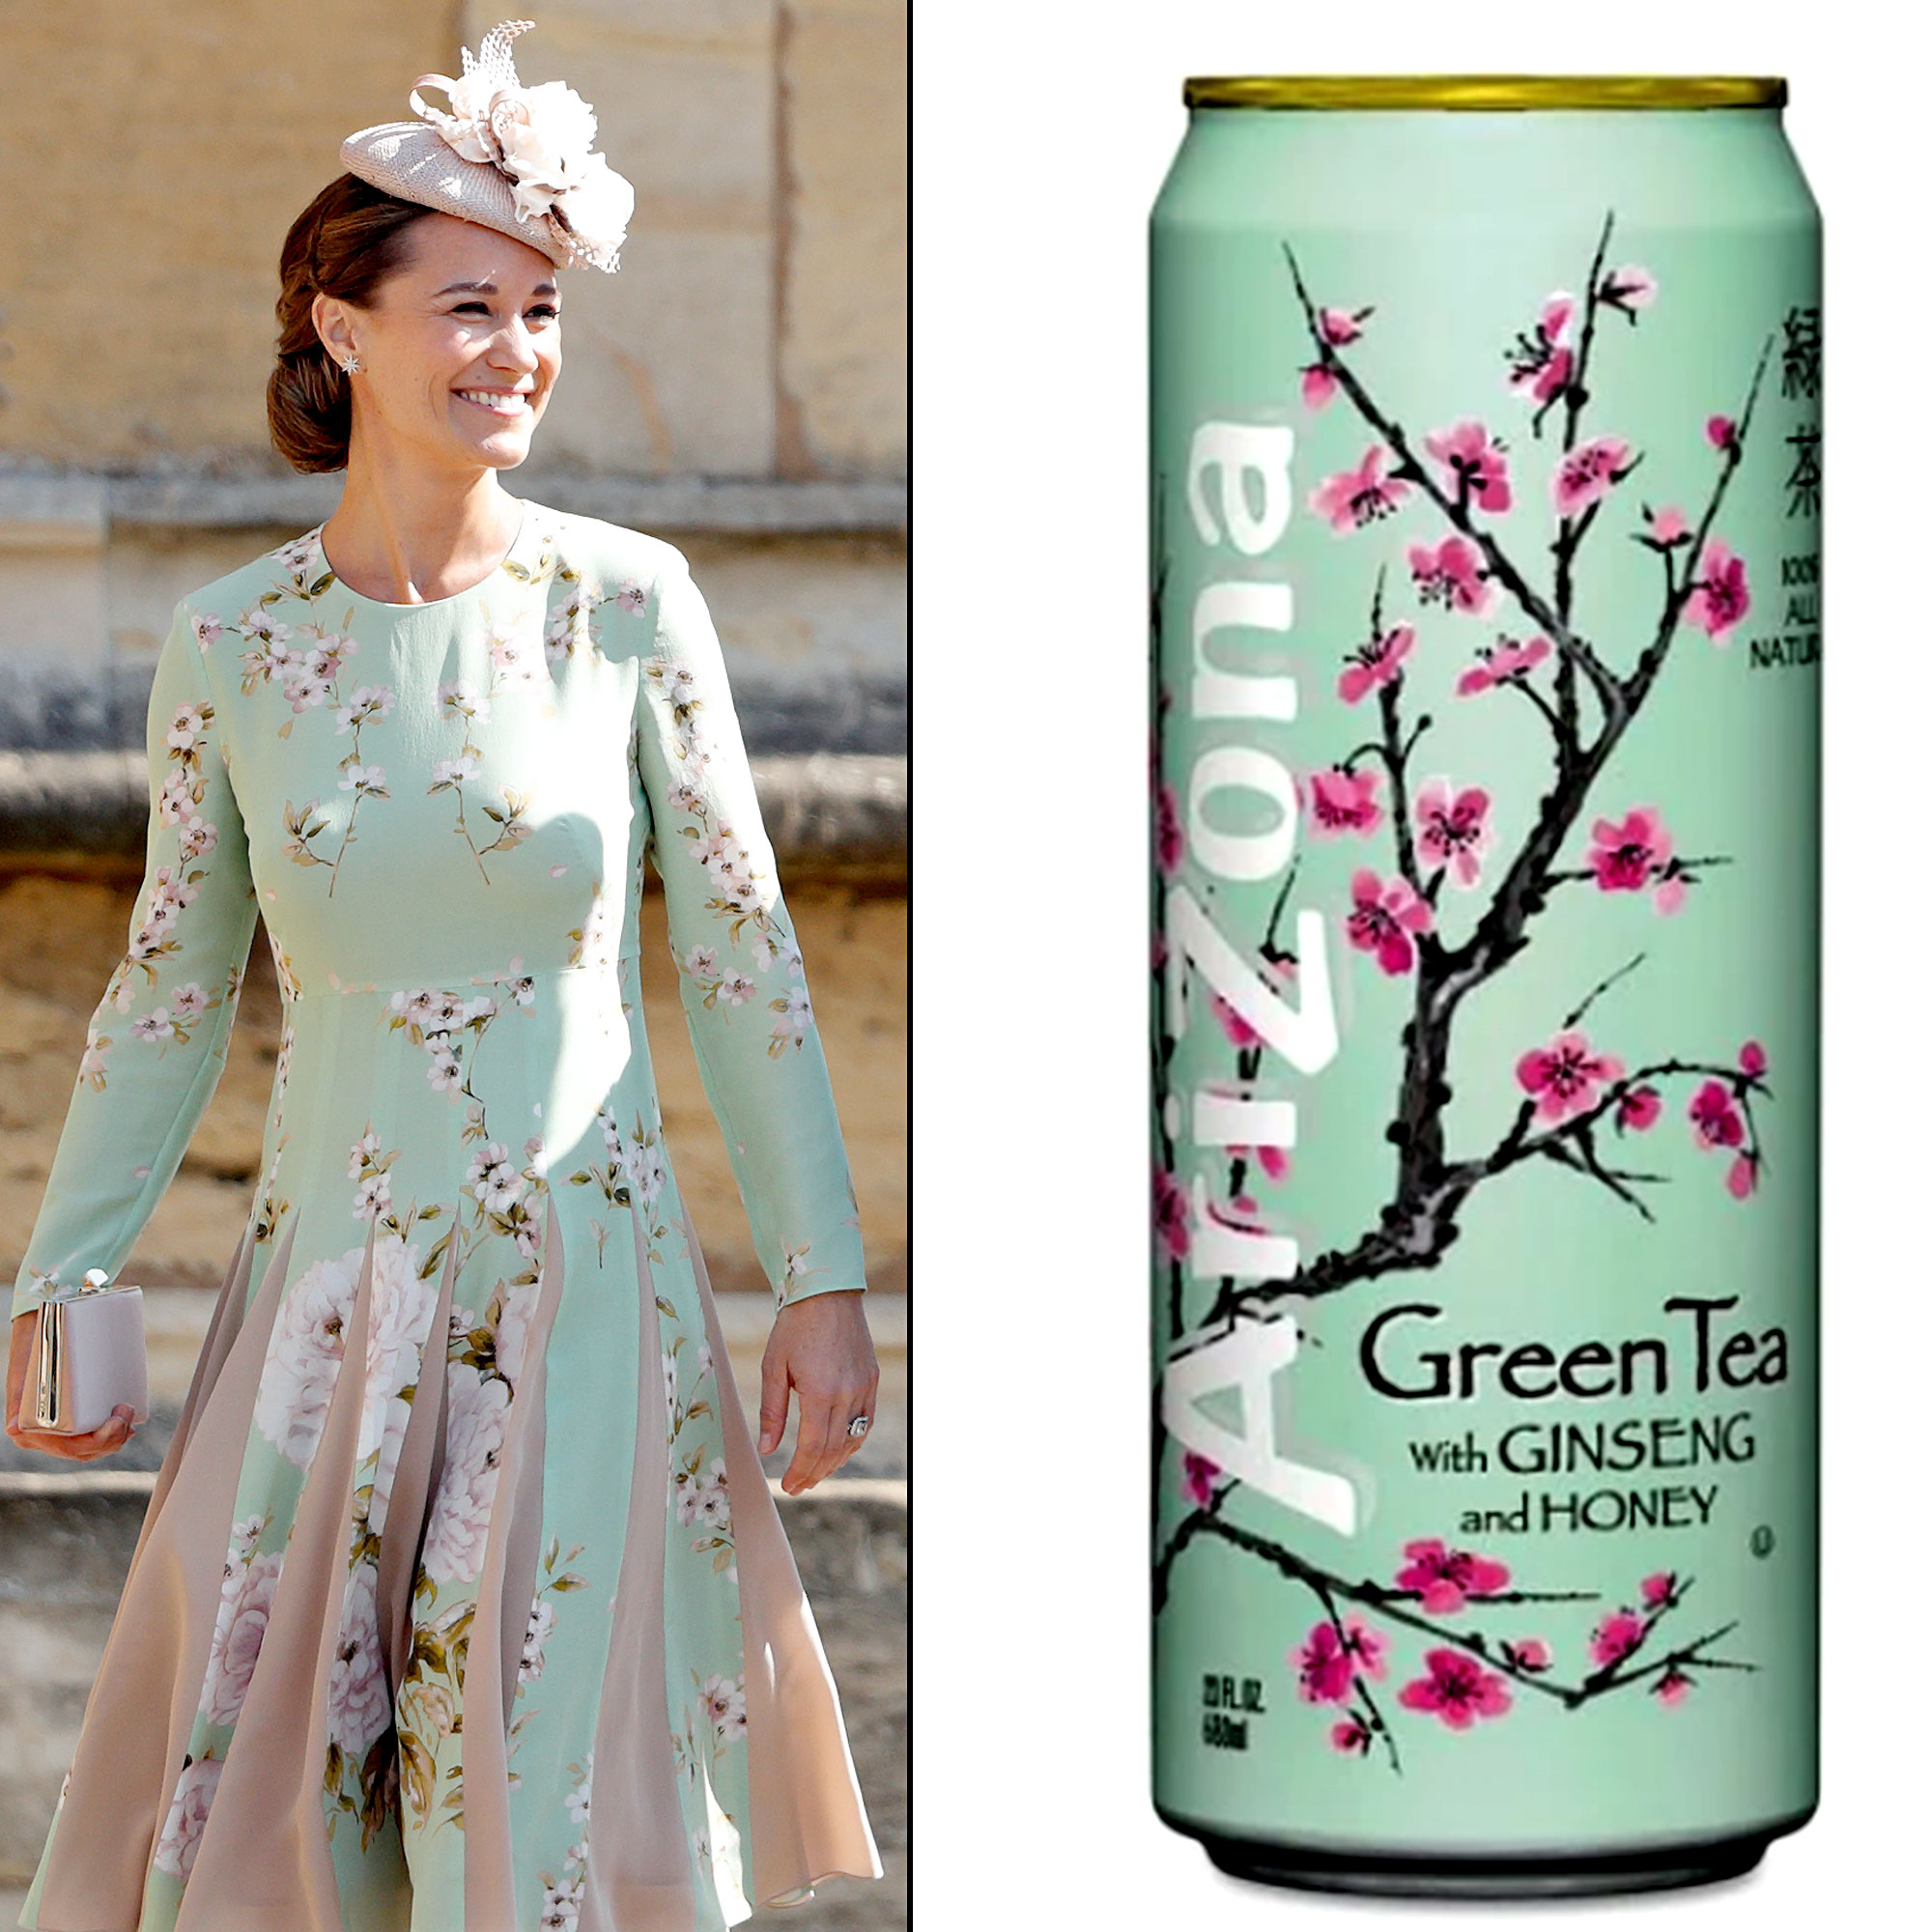 Celebs Who Have Looked Like Food - Kate Middleton's younger sister turned heads in May 2018 when she showed up to Prince Harry and Meghan Markle's wedding at Windsor Castle wearing a dress that closely resembled a can of Arizona Iced Tea. The royal relative's pale green frock from British brand The Fold featured a delicate floral pattern that reminded many of the similar-looking green tea container.